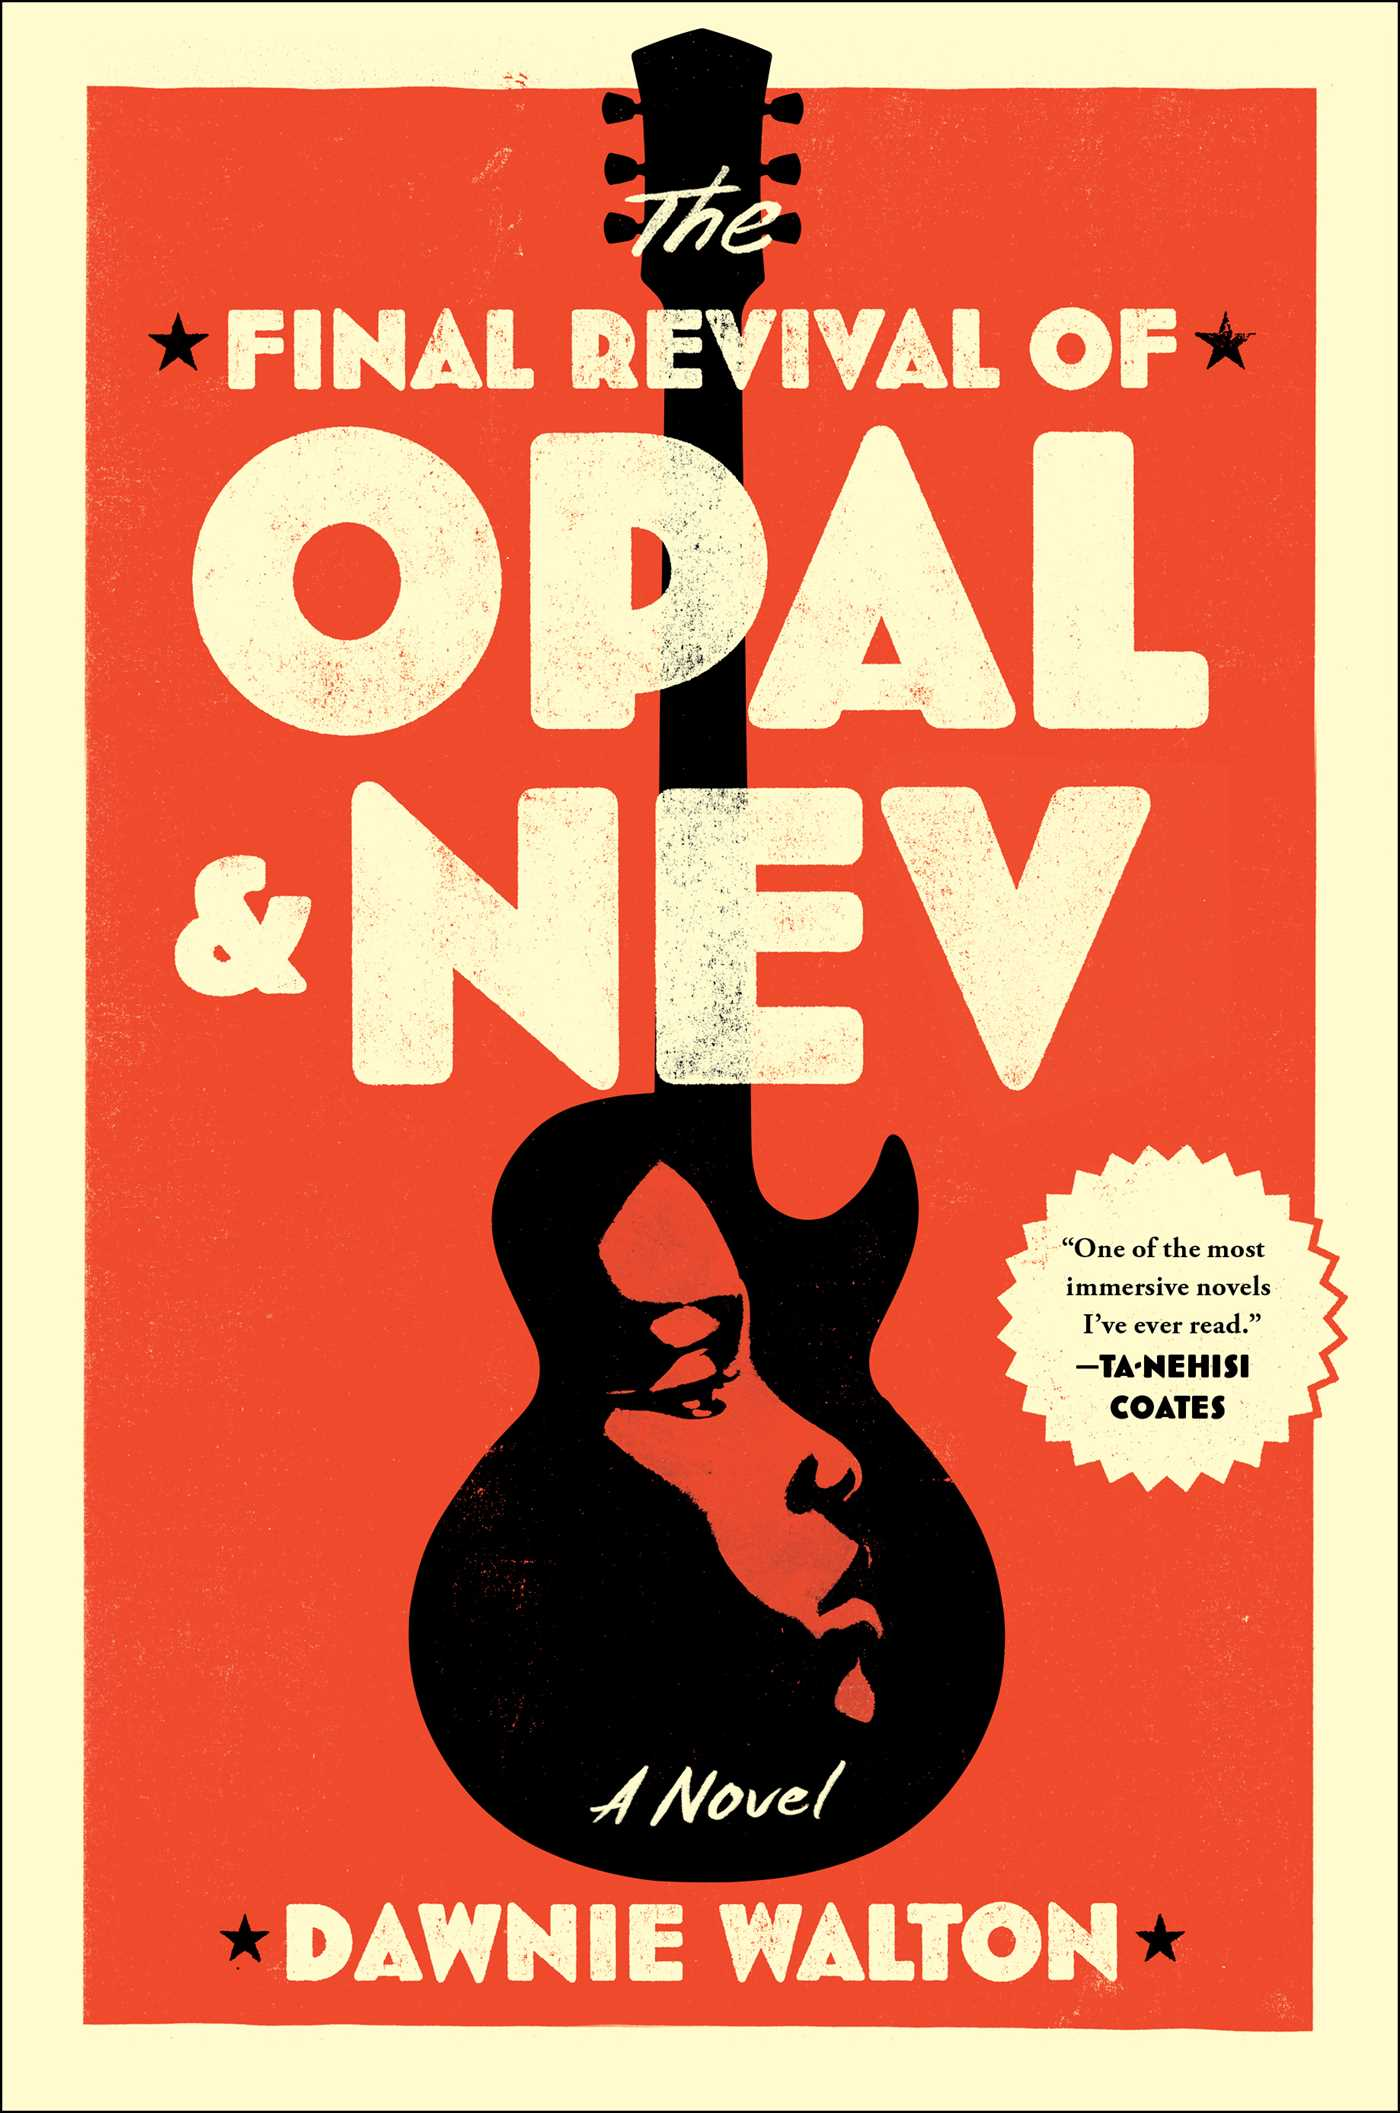 The Final Revival of Opal and Nev Review